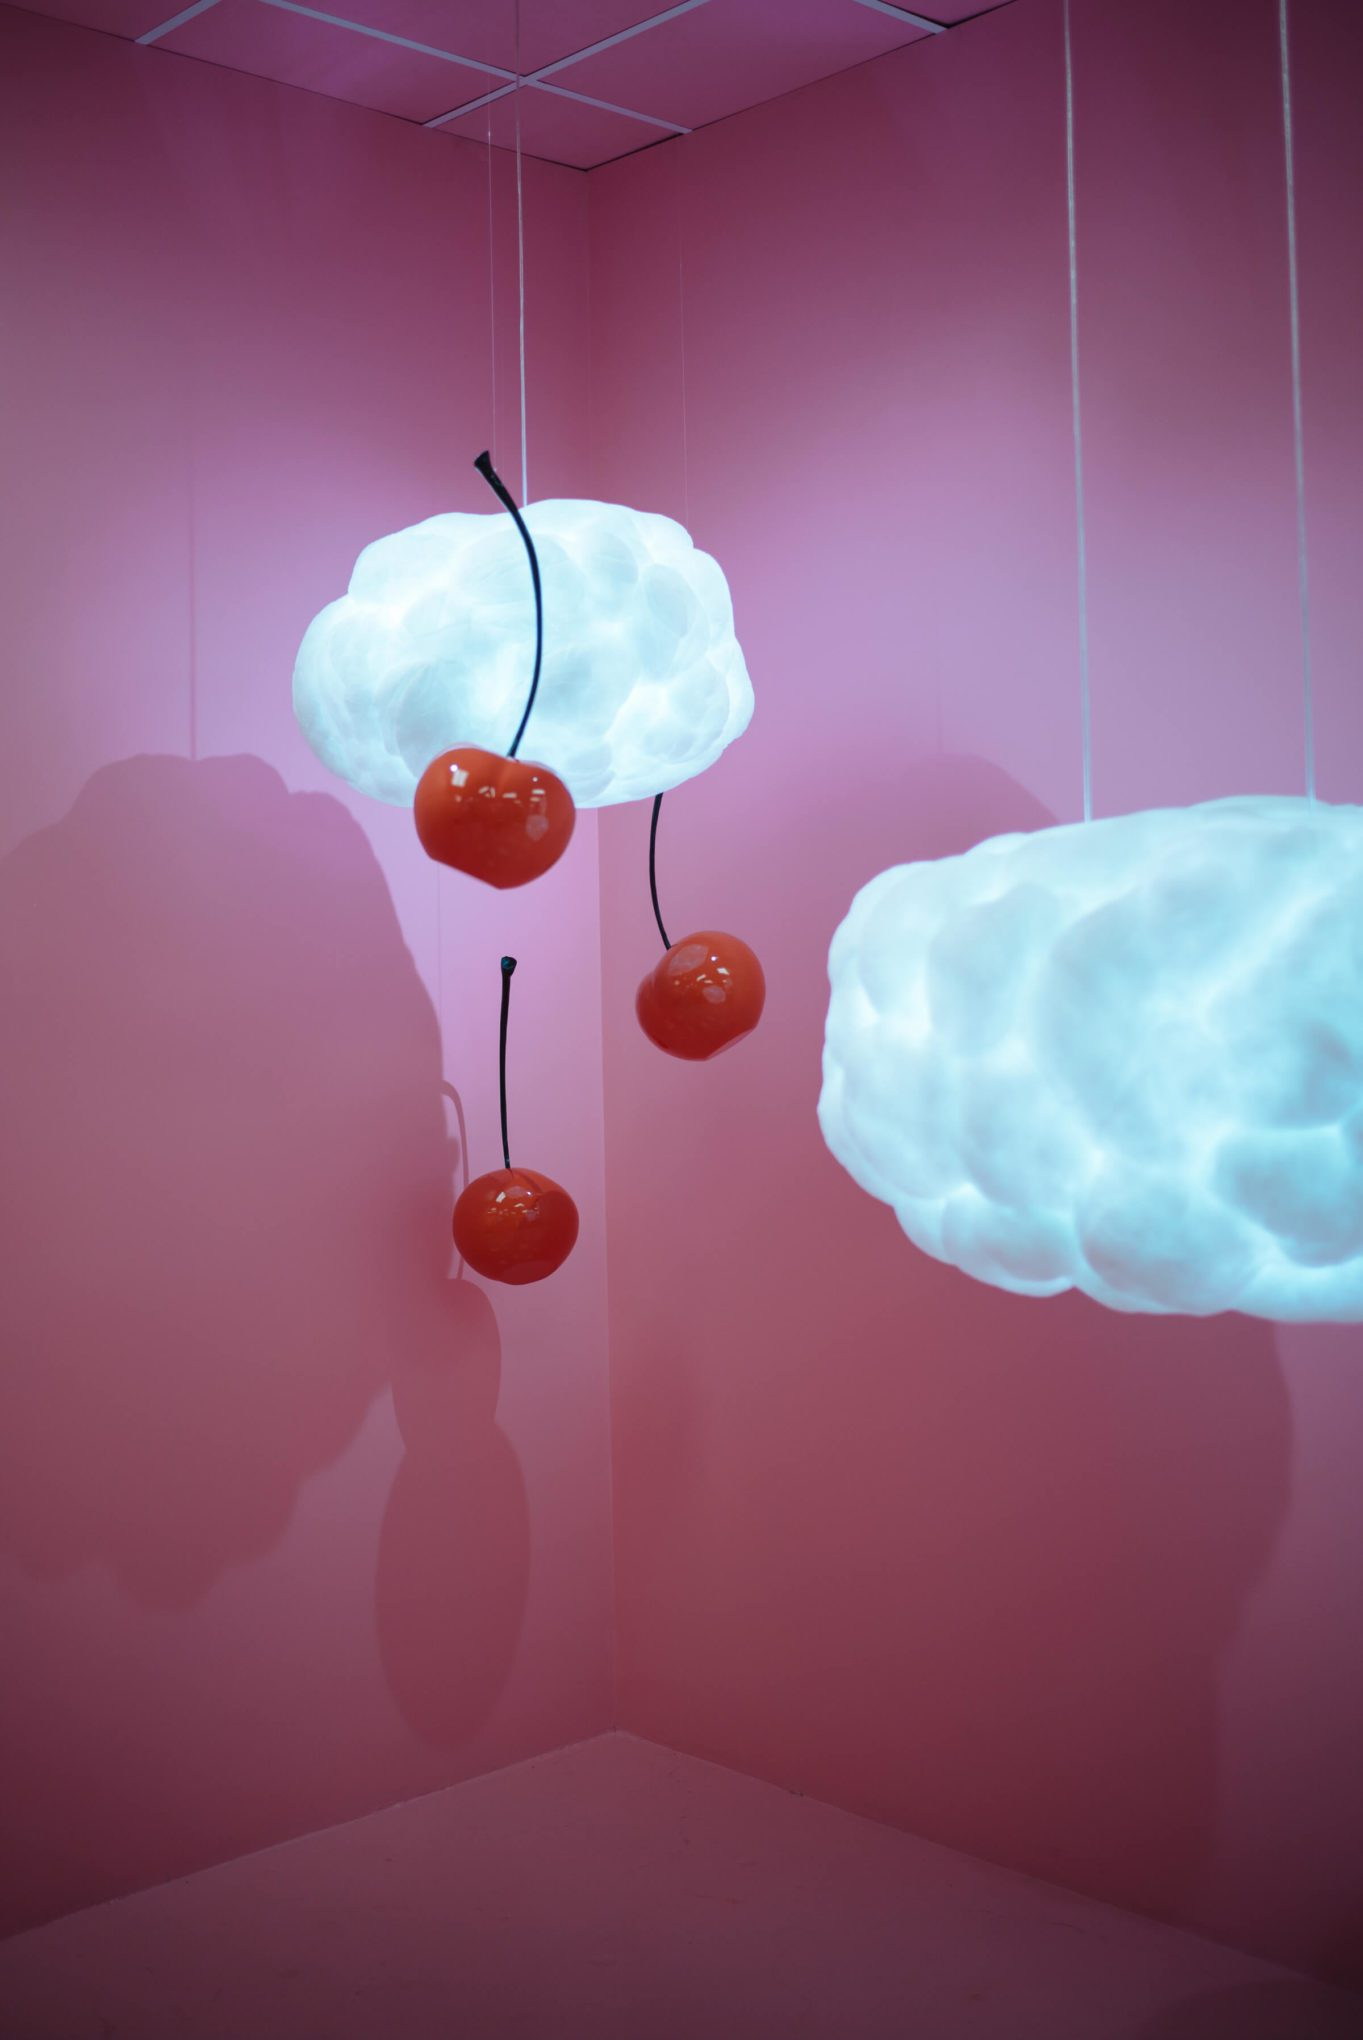 Check out the Cherry Room at The Museum of Ice Cream San Francisco, The Taste Edit